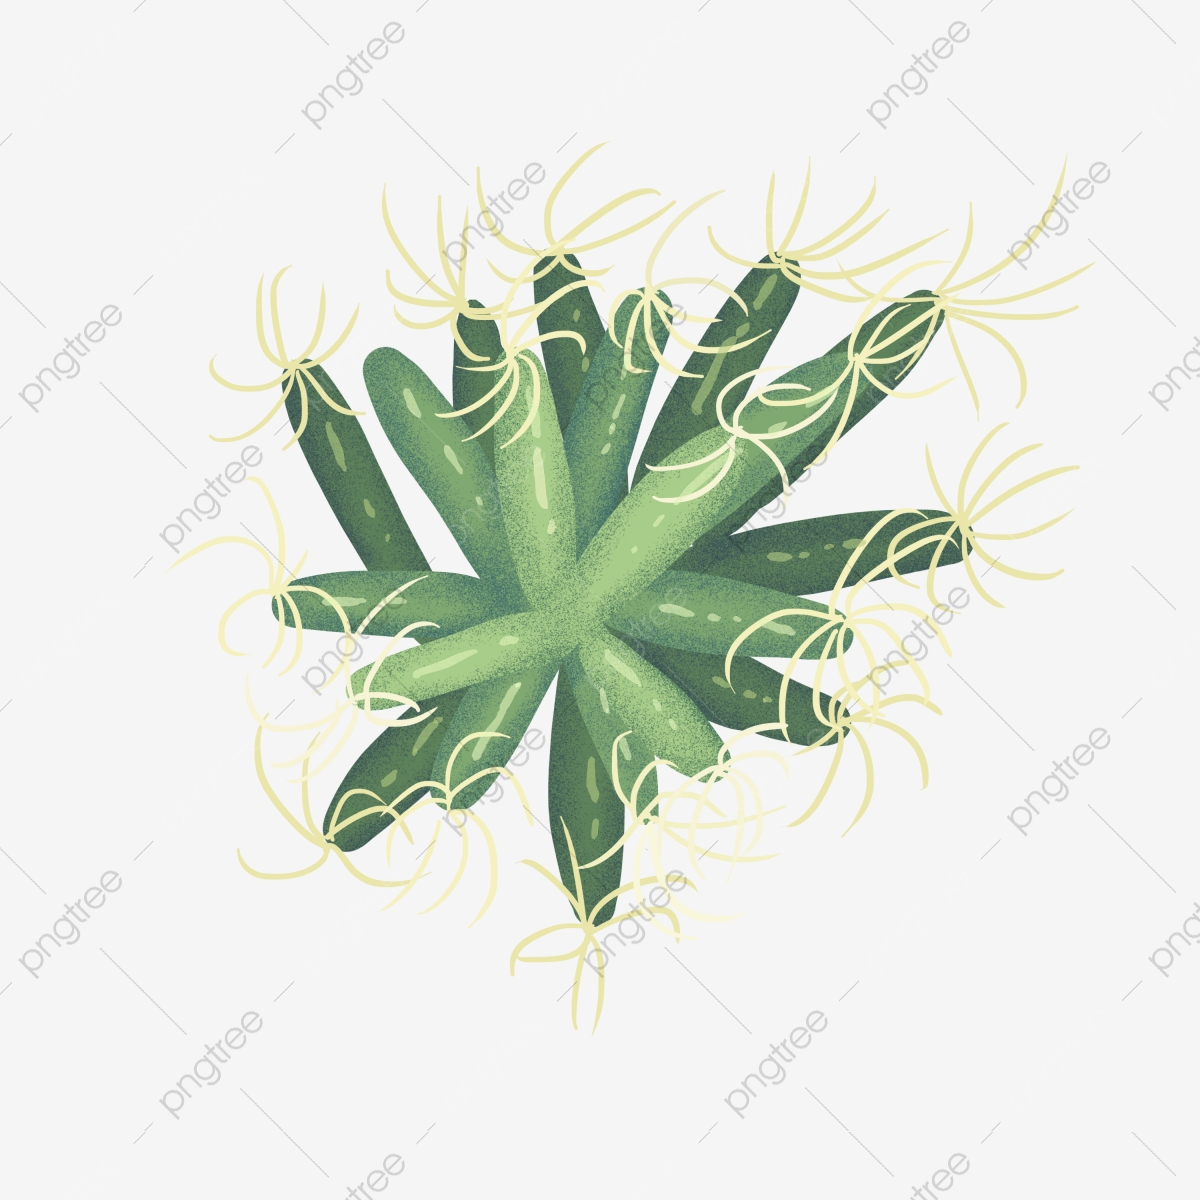 Plant Top View Png Vector Psd And Clipart With Transparent Background For Free Download Pngtree